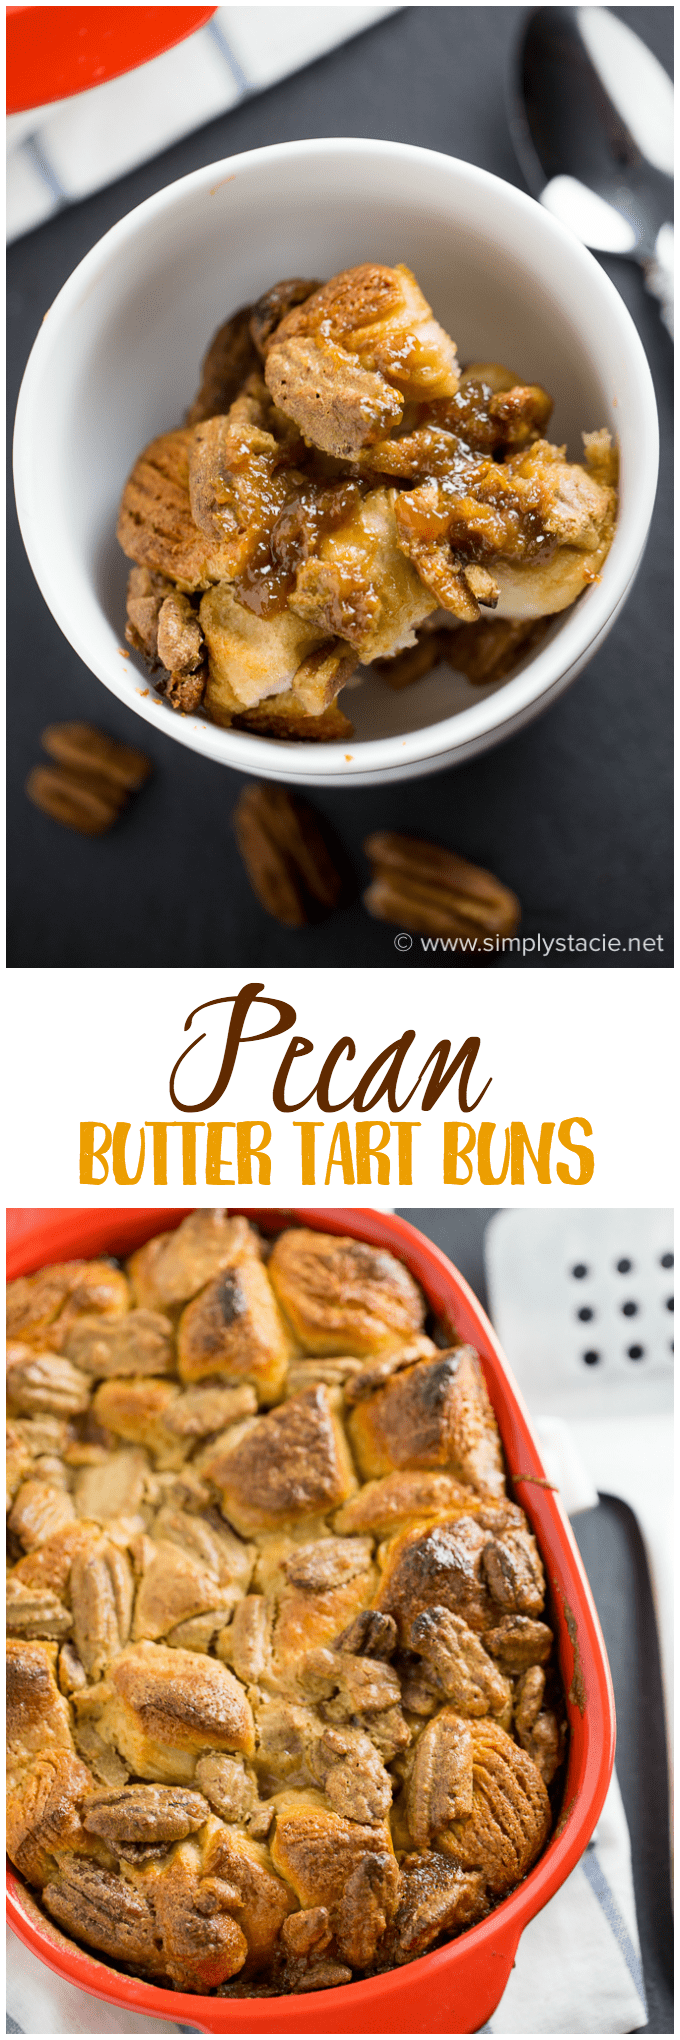 Pecan Butter Tart Buns - A cross between Pecan Butter Tarts, Chelsea Buns and Monkey Bread. These three desserts are combined together to create an indulgent delight!